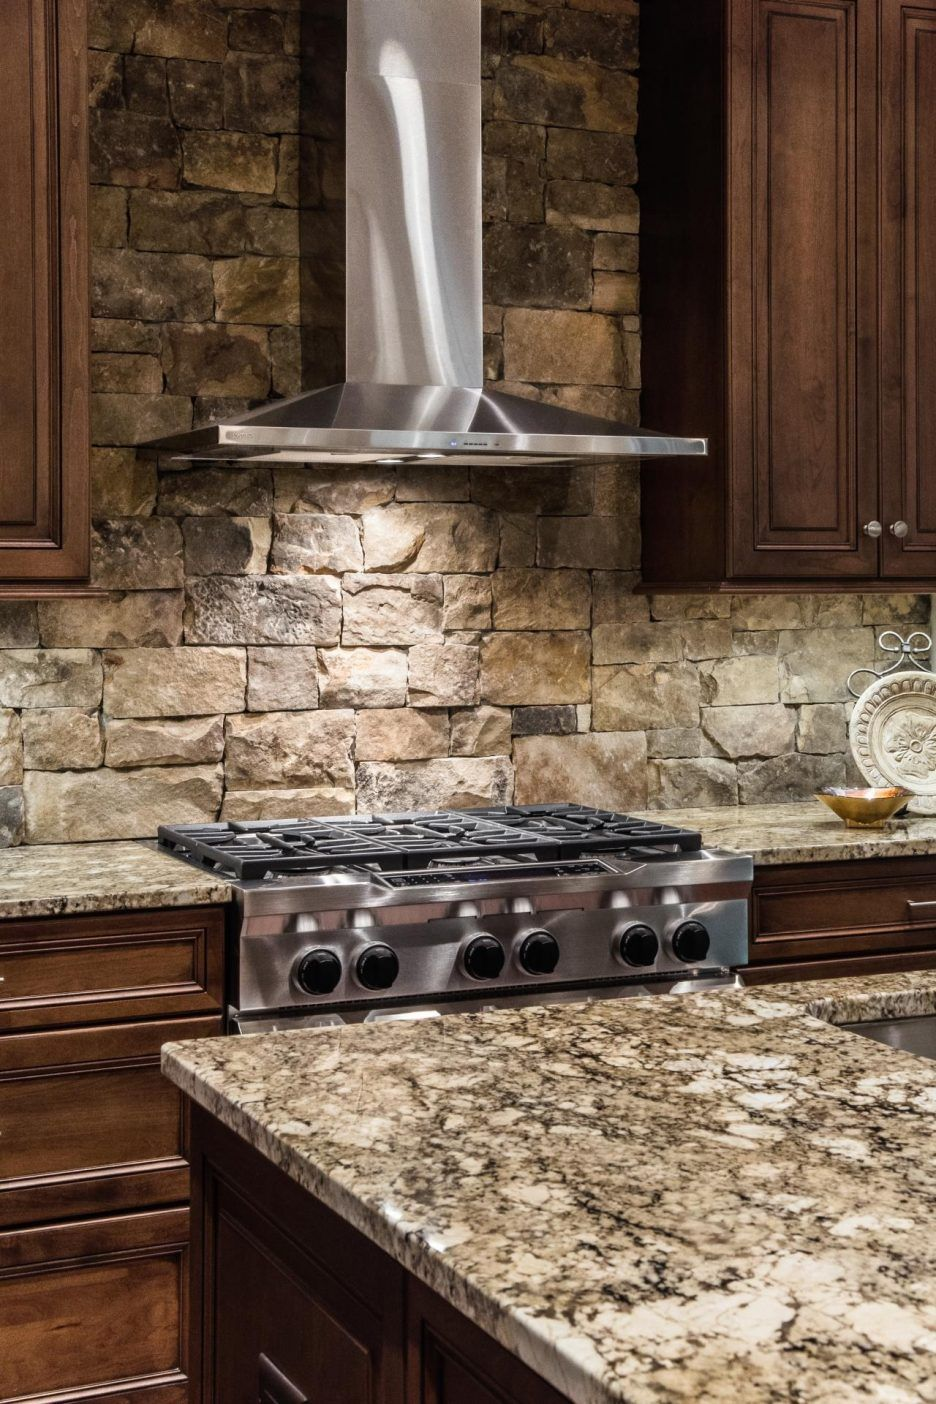 Best Kitchen Backslash Grey Backsplash Tile Large Stone 400 x 300